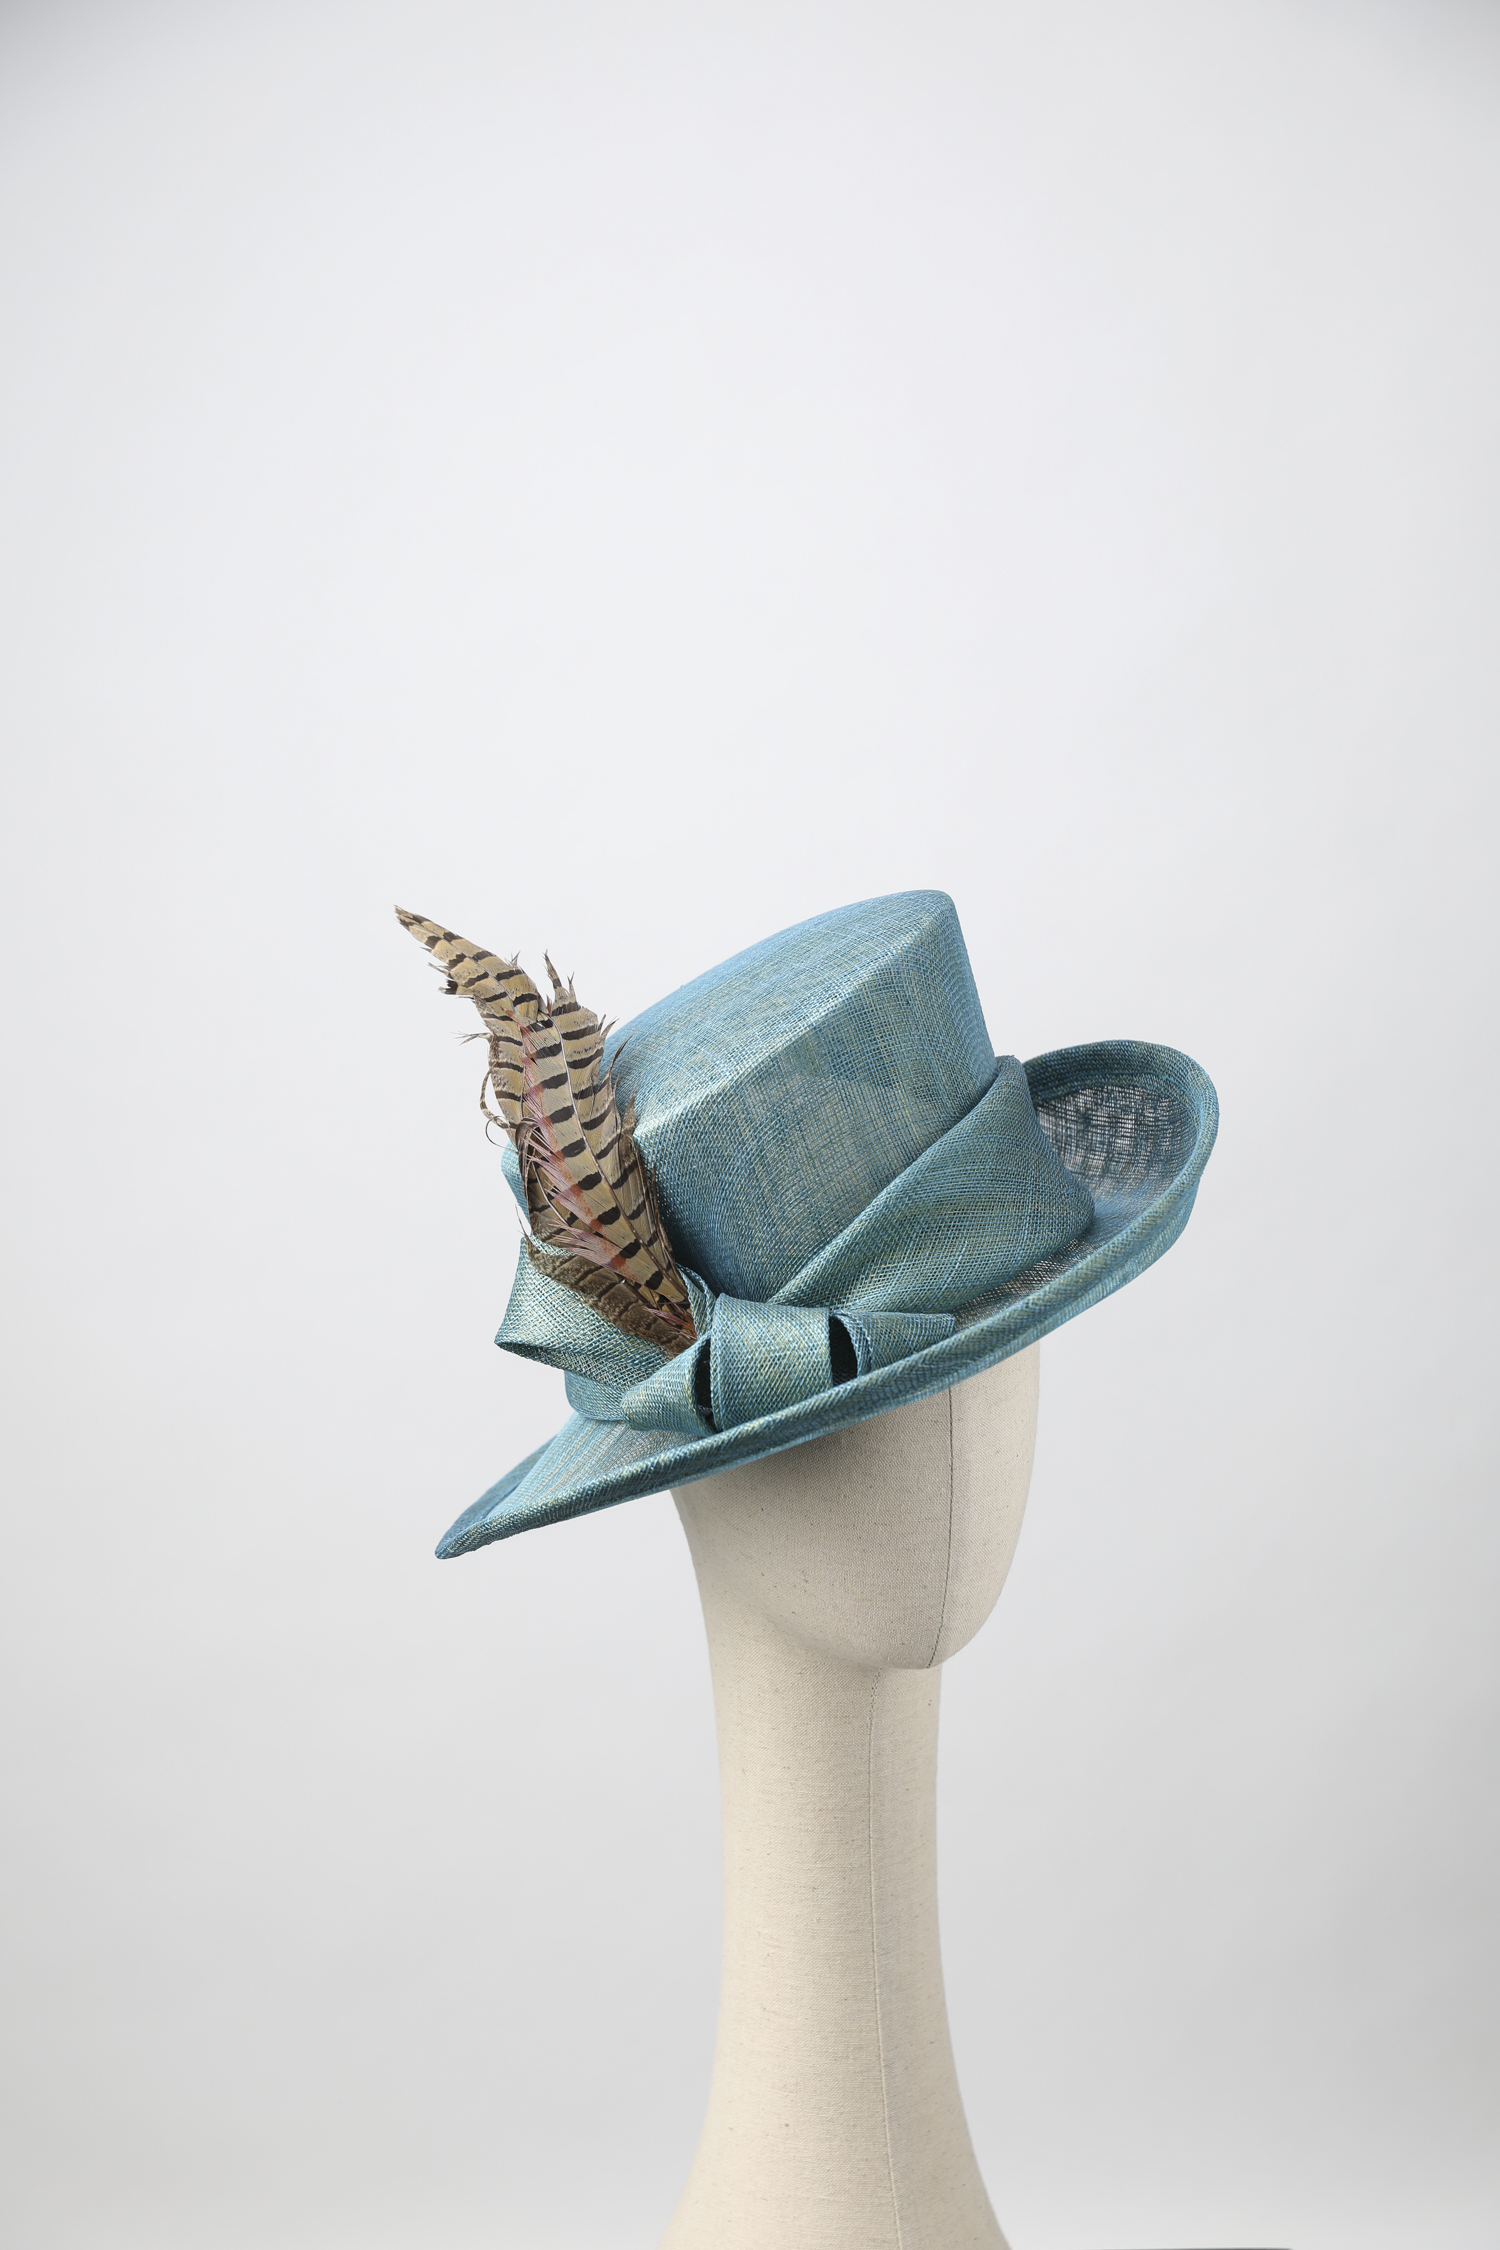 Copy of Jaycow Millinery by Jay Cheng Sample Stock 2019 (8).jpg